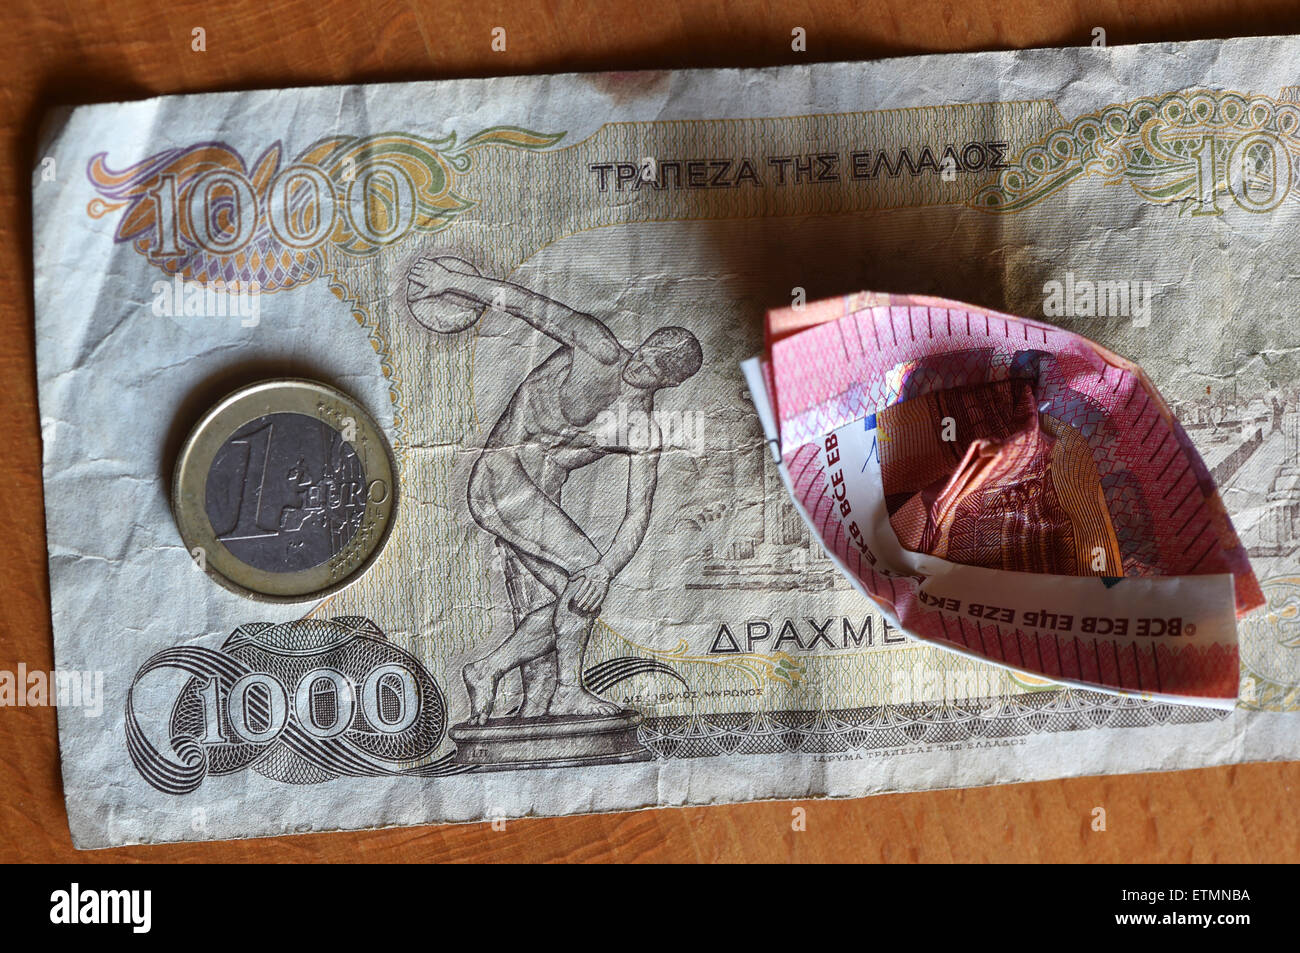 Berlin, Germany. 14th June, 2015. ILLUSTRATION - A euro coin and a ten euro bill which has been folded into a boat lies on a 1000 Greek drachma bill in Berlin, Germany, 14 June 2015. Photo: Jens Kalaene/dpa/Alamy Live News Stock Photo